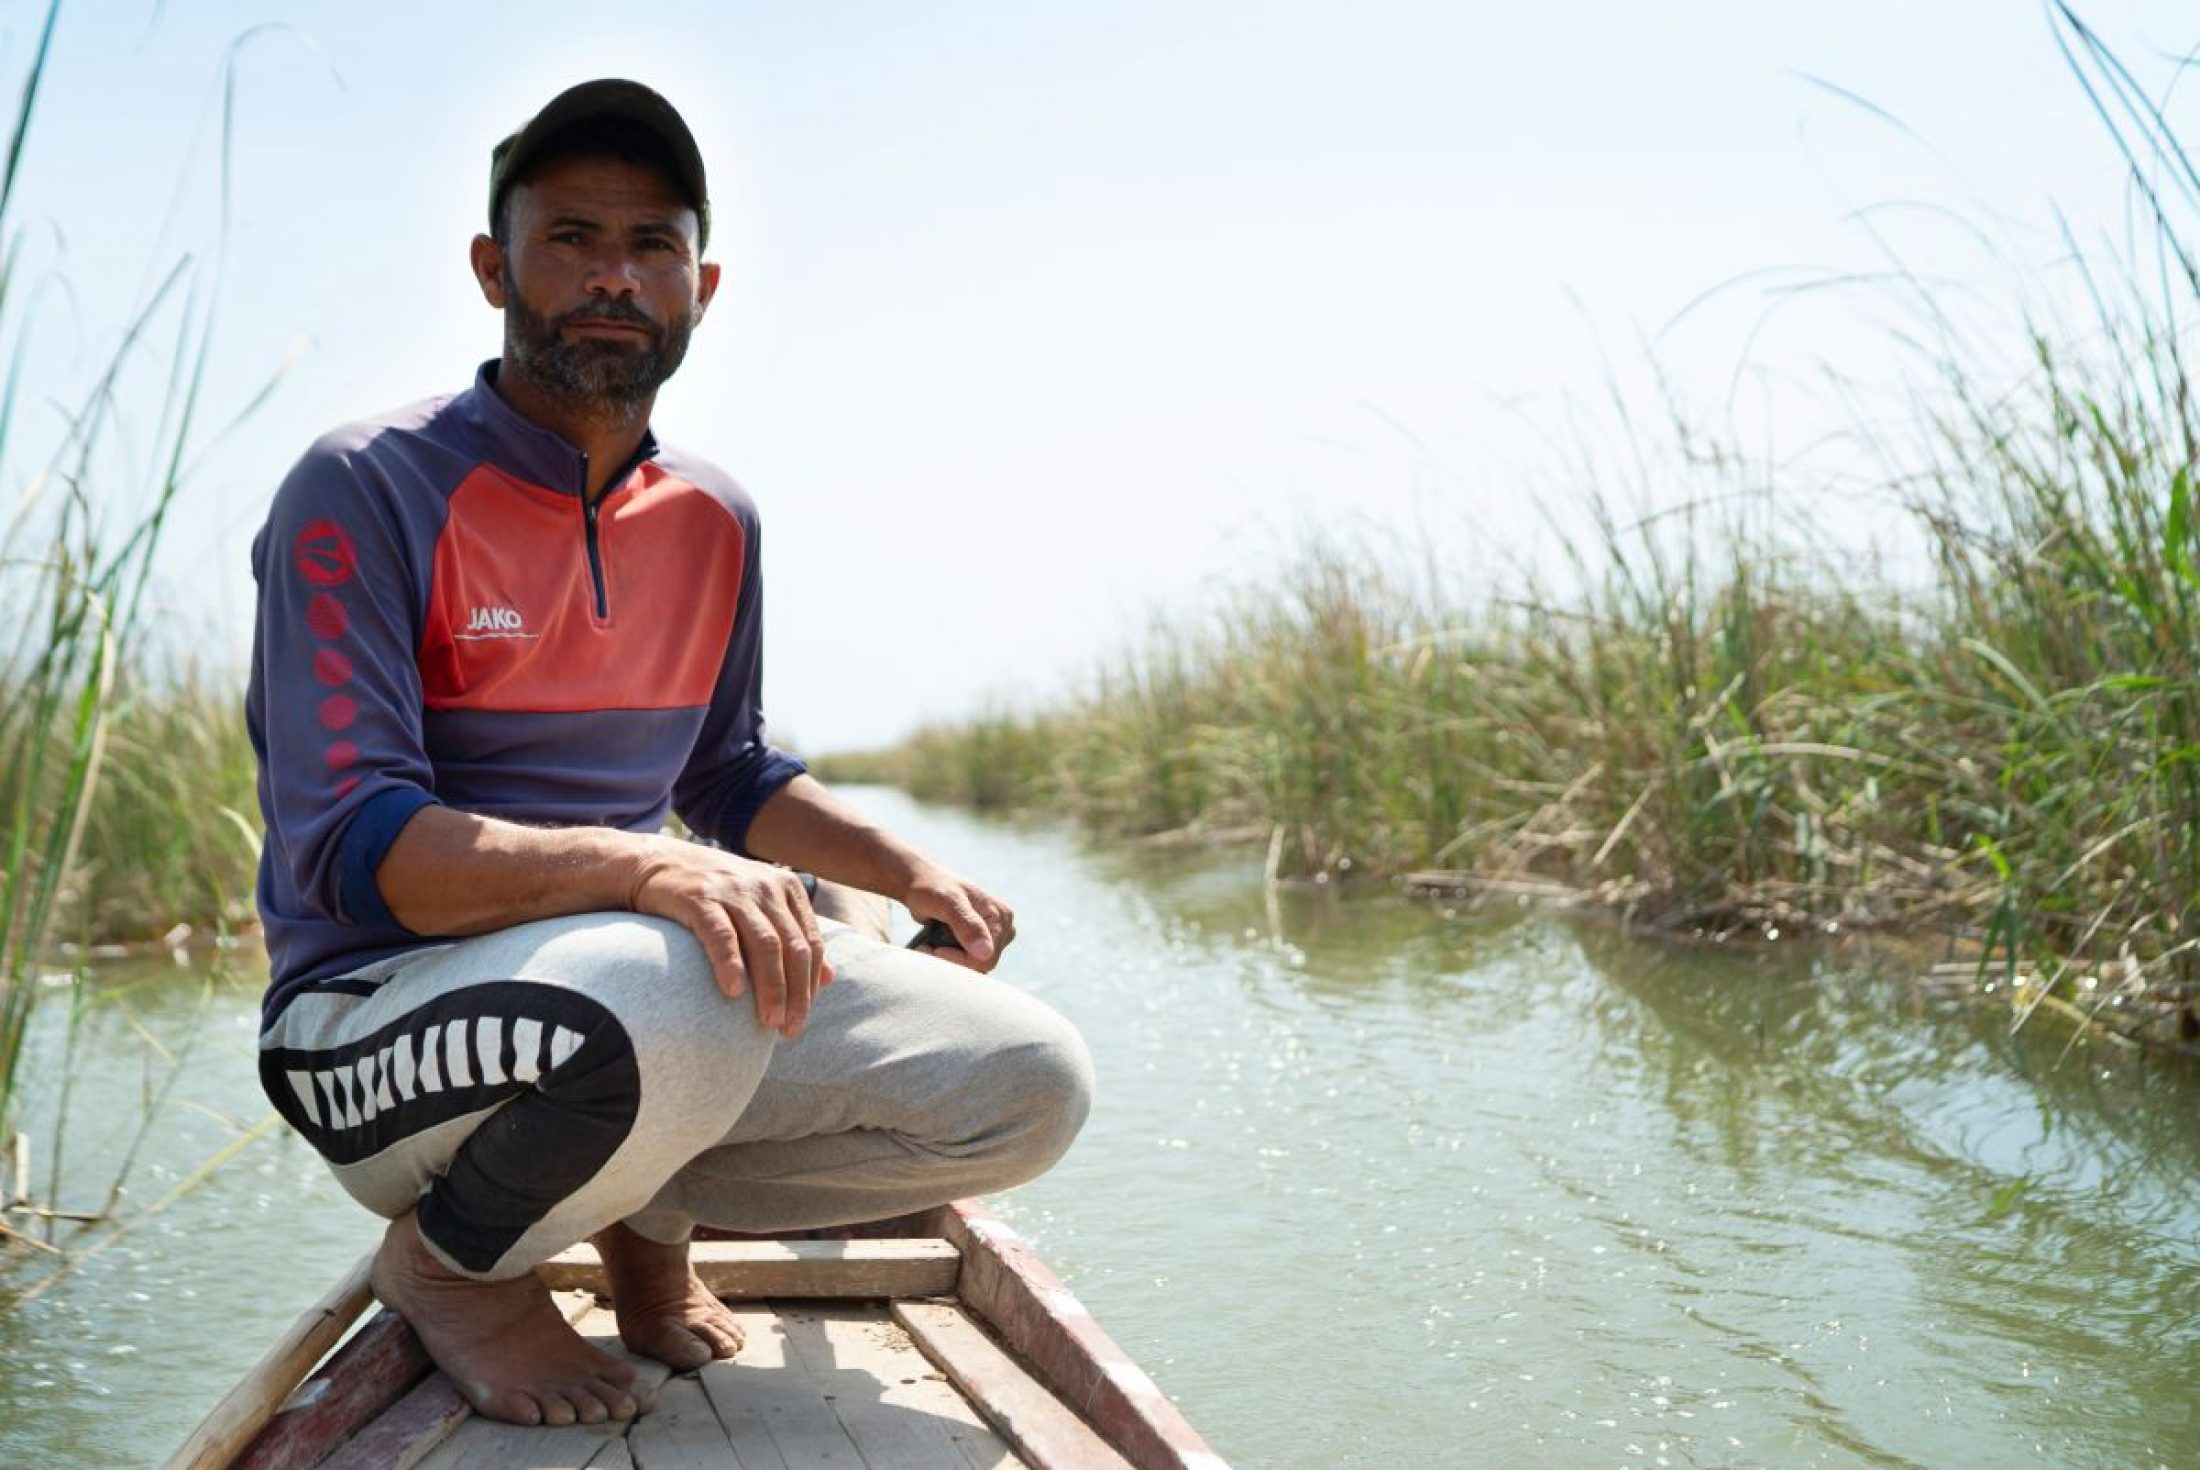 Razaq Nasser Saber steers his boat through reeds on the Mesopotamian Marshes